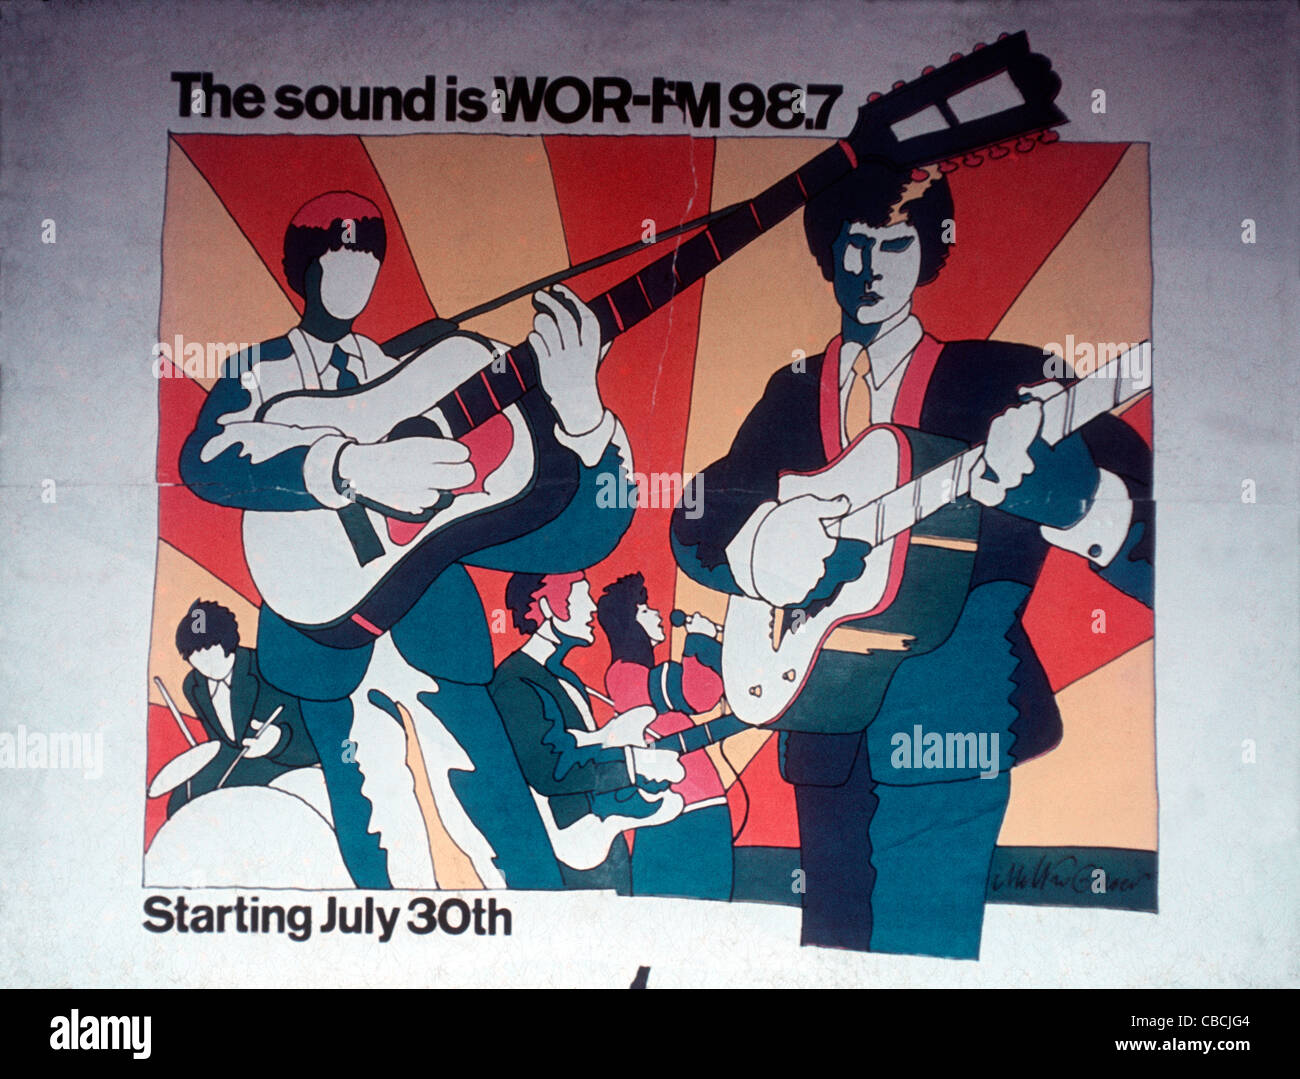 A subway advertising poster for New York's first alternative rock FM radio station, WOR-FM from July 1967 - Stock Image